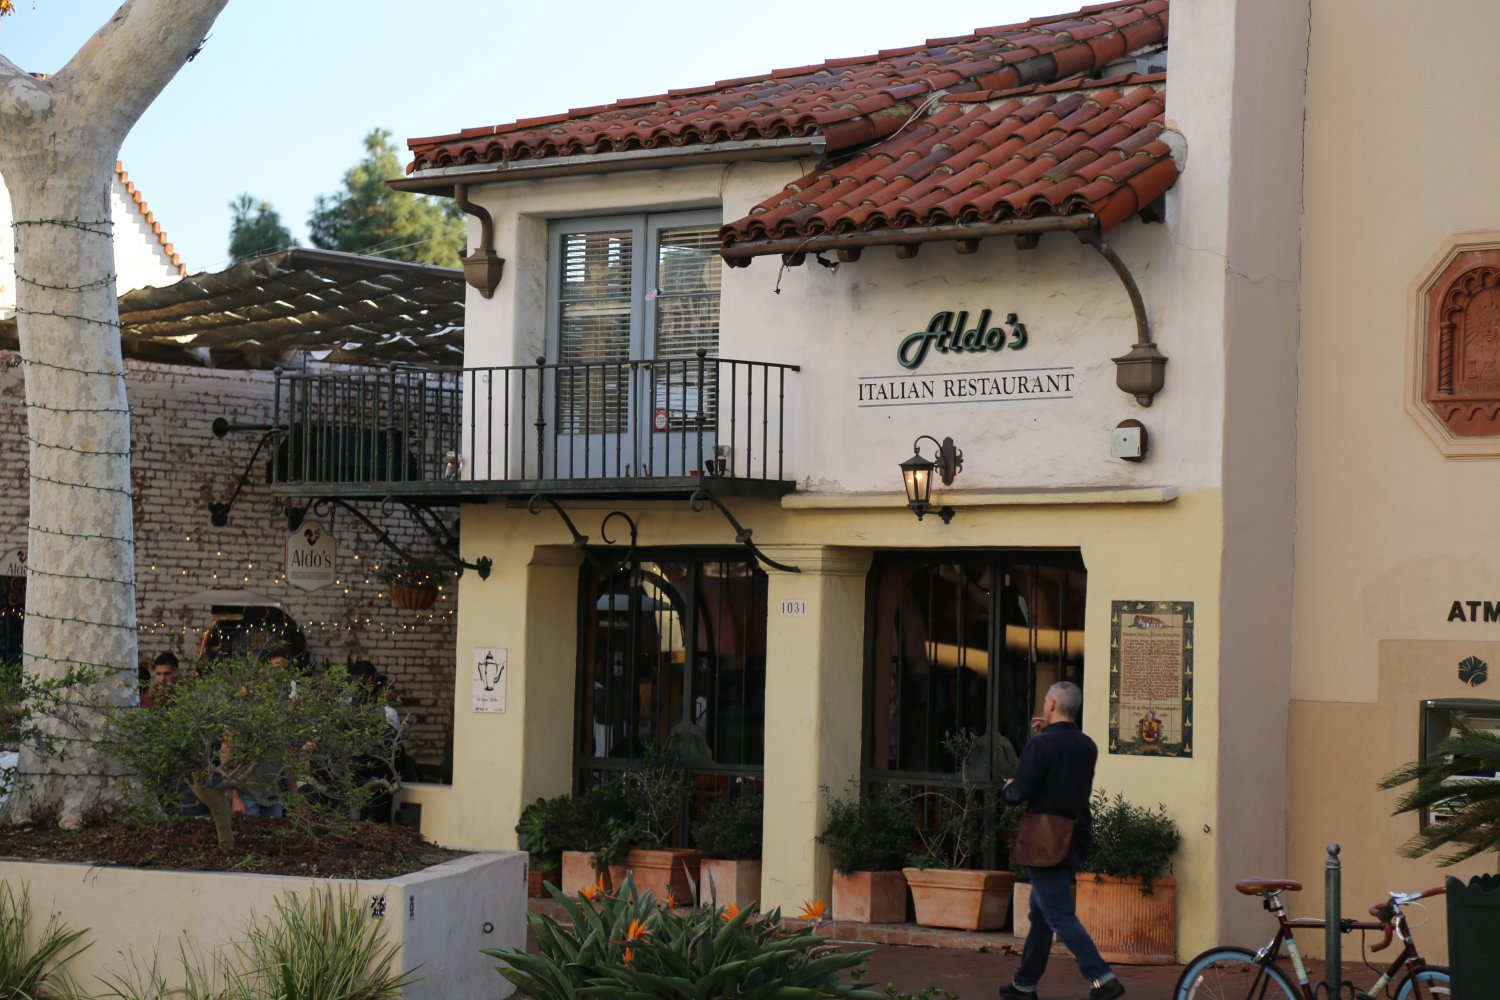 Aldo S Is One Of Dave Favorite Street Side Dining Cafes On State The Salads Are Very Good Here Has Also Enjoyed Excellent Salmon Dishes